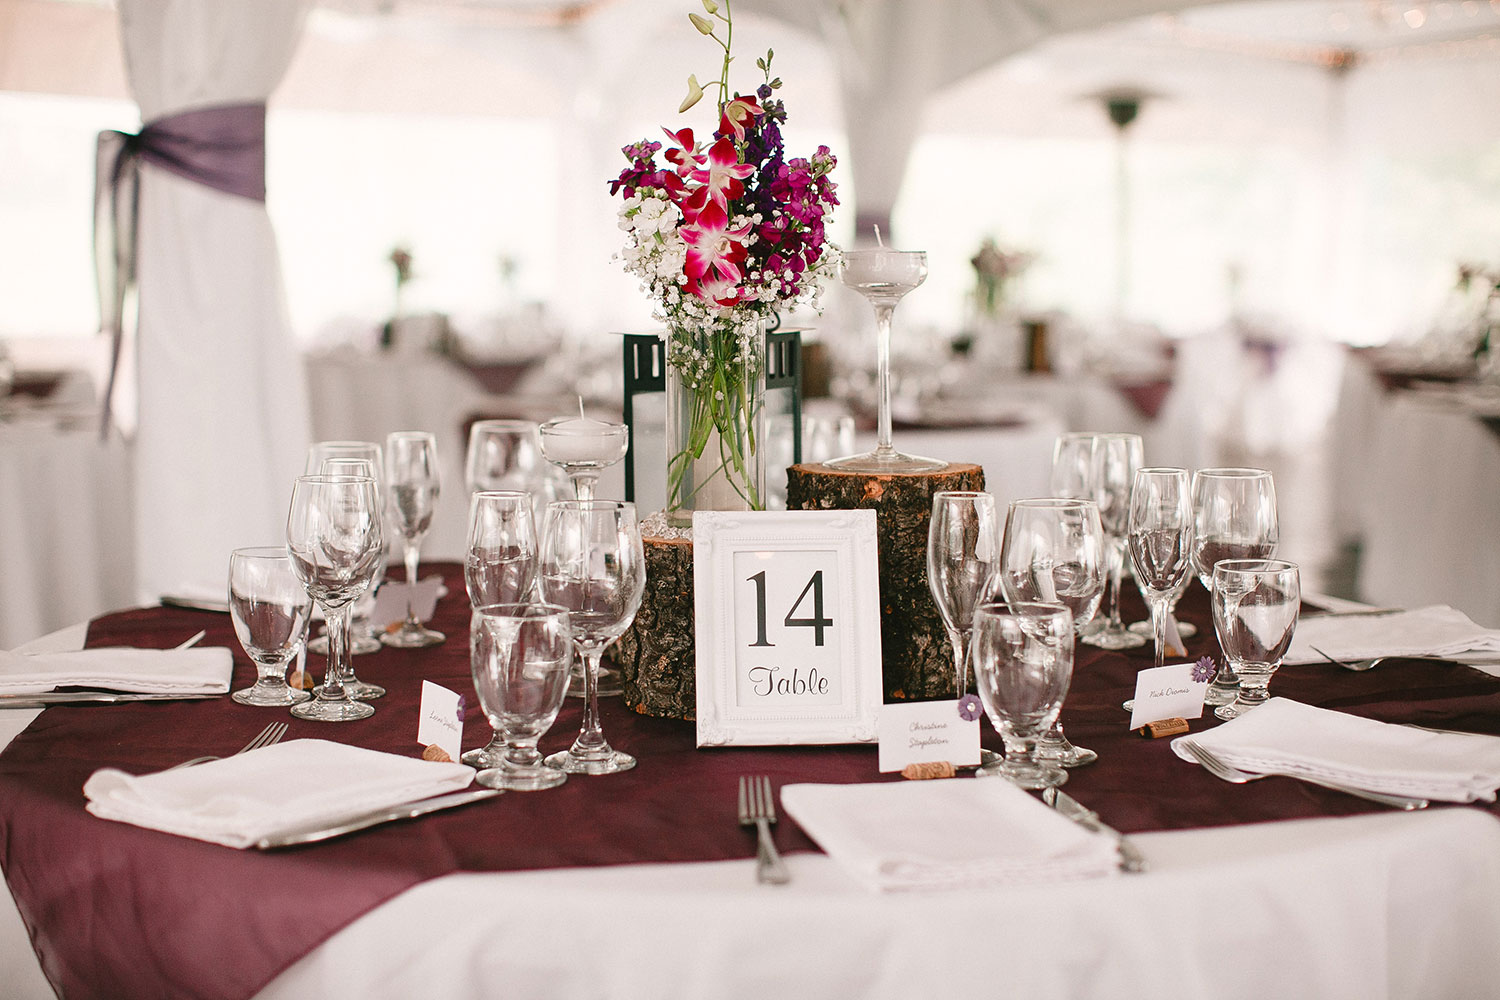 4. Table flowers in same colours as bride and bridesmaid bouquets.